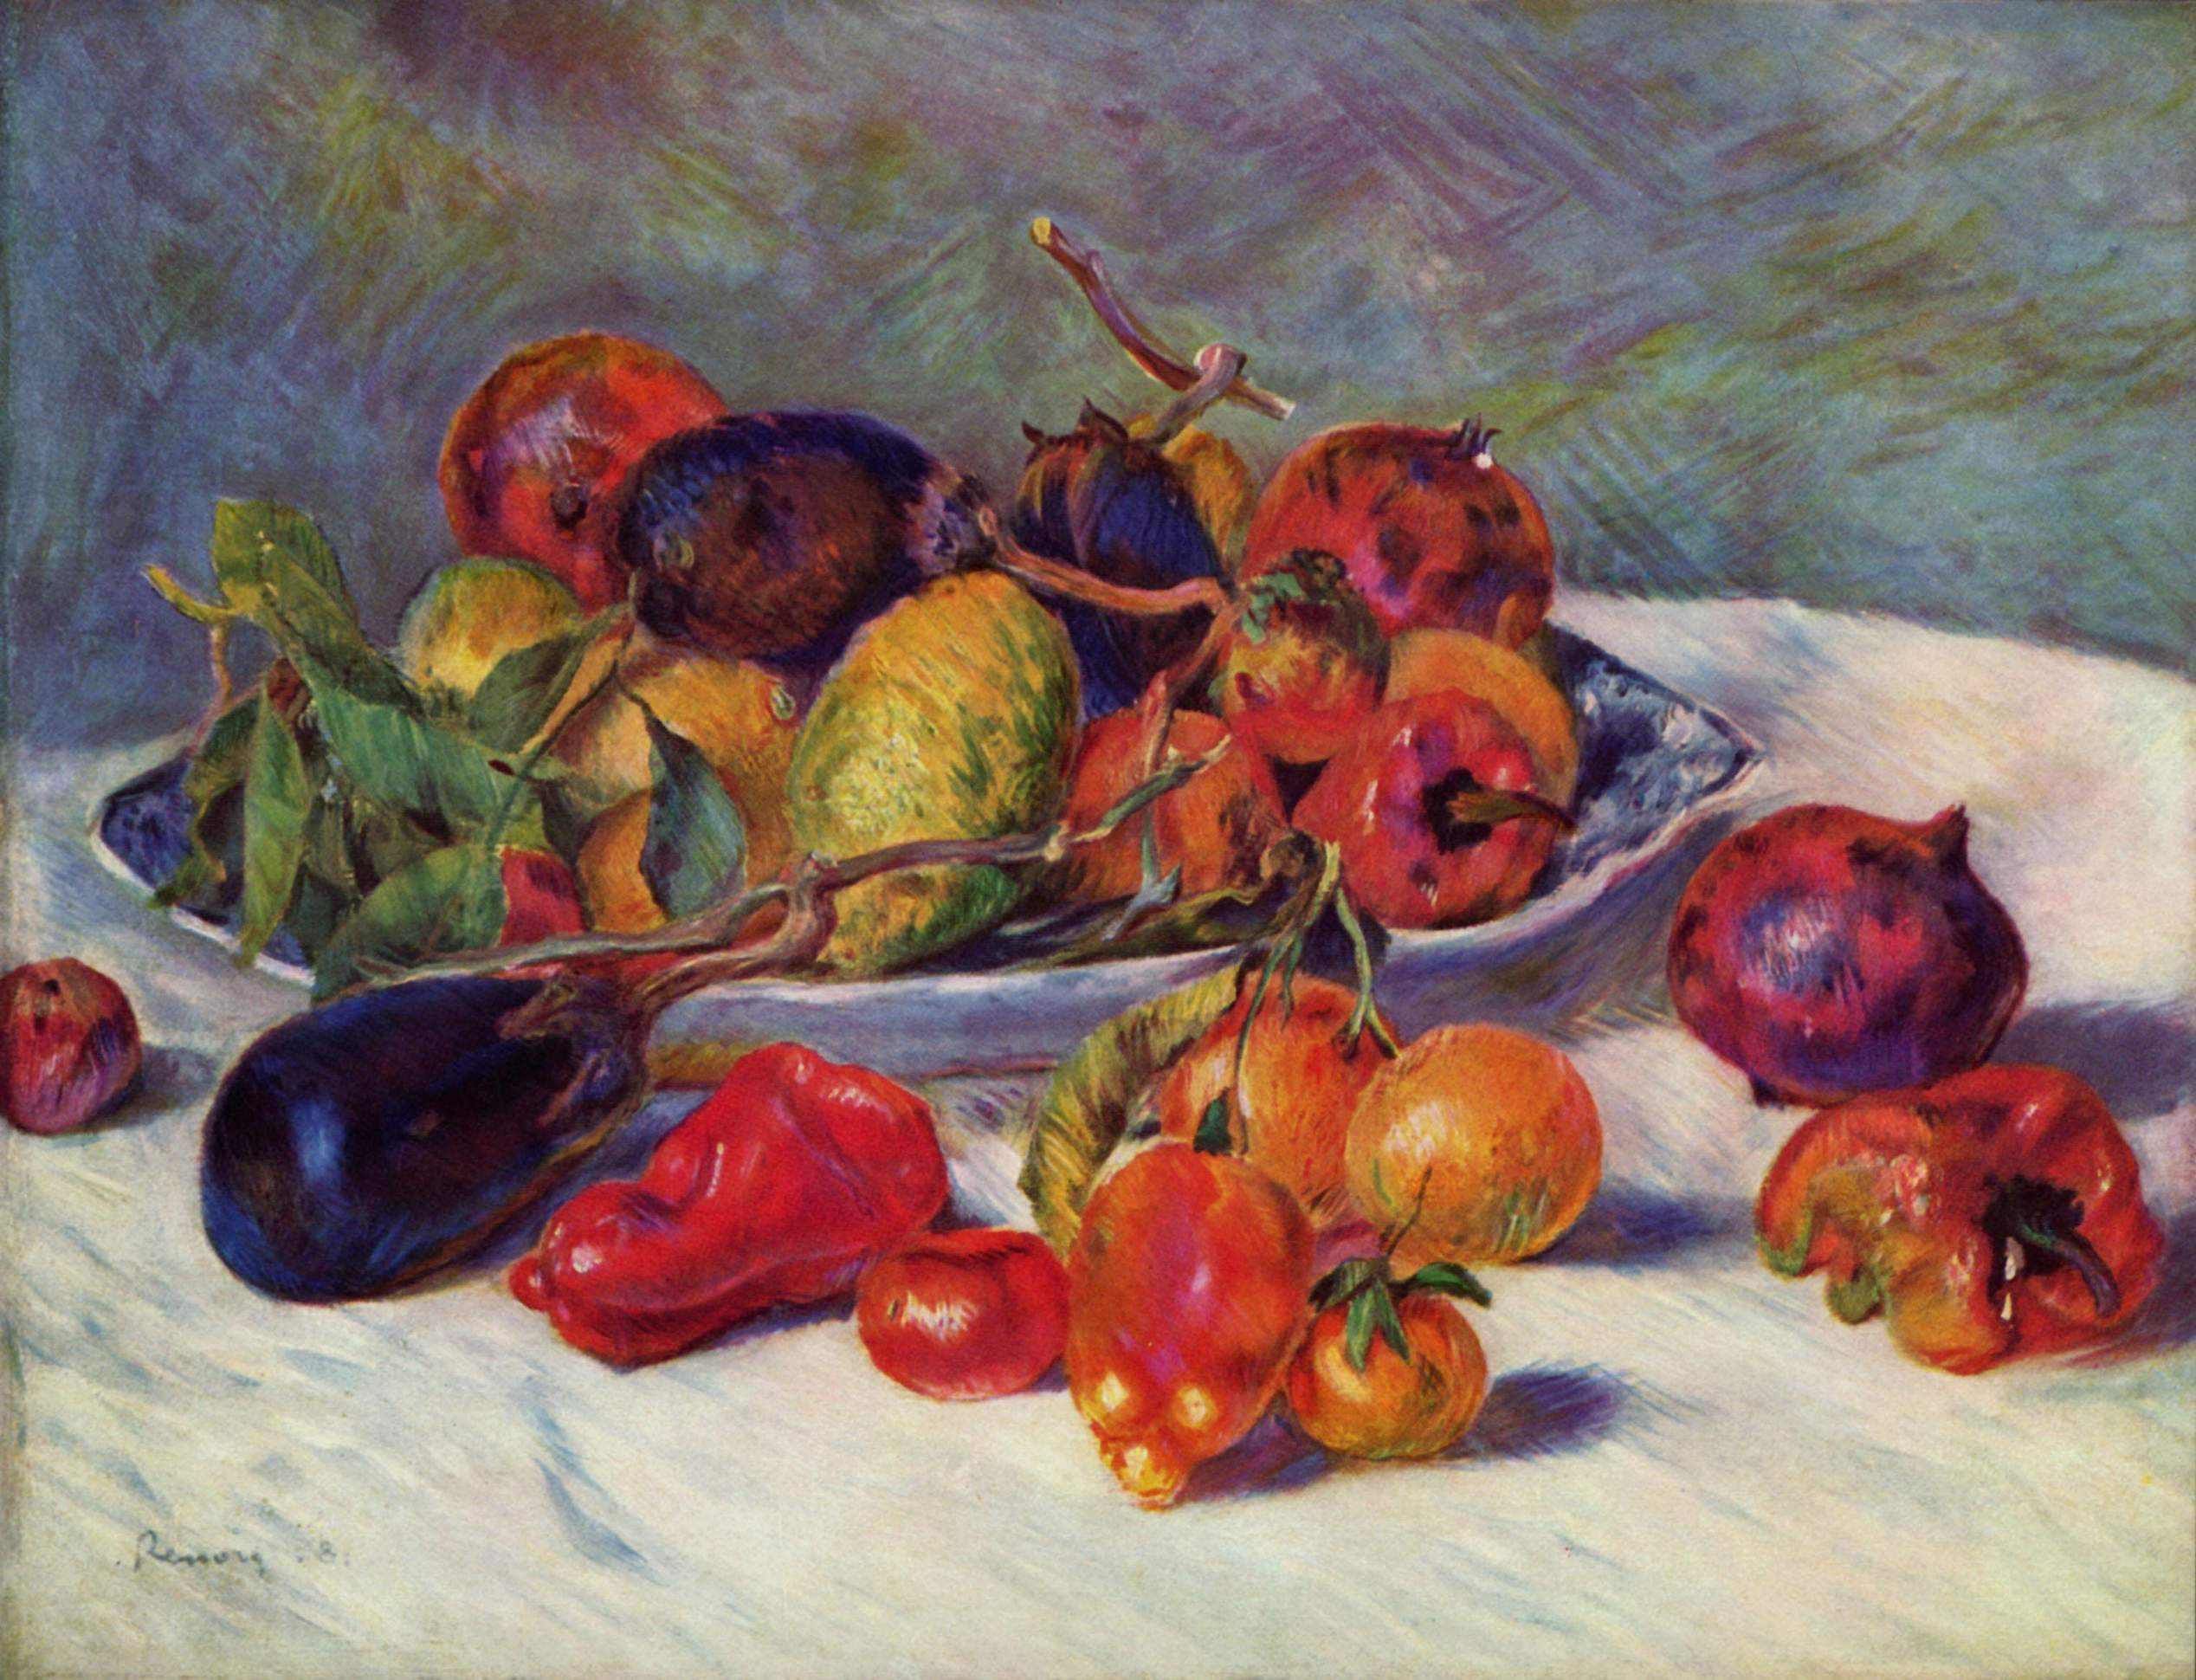 Pierre-Aguste Renoir - Fruits of the Midi, 1881